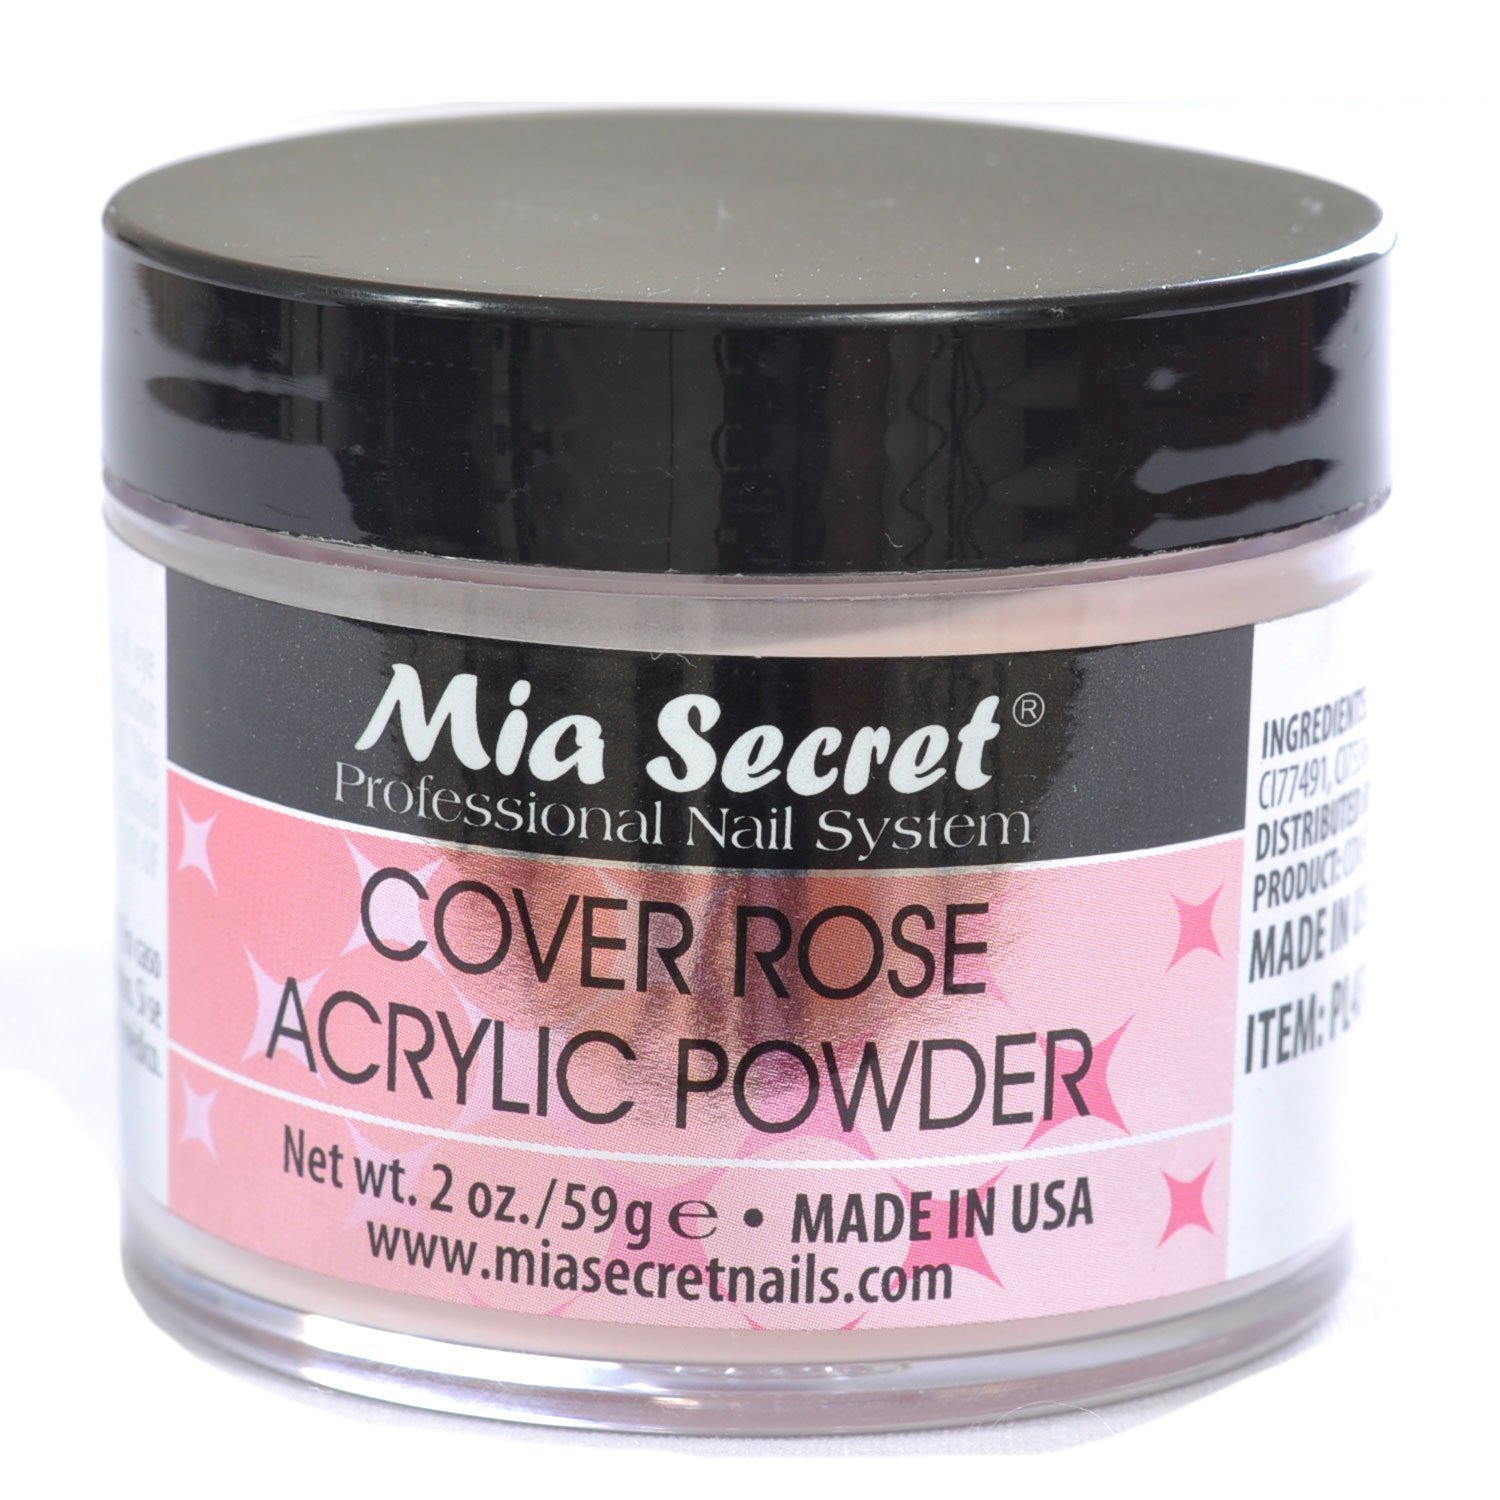 Mia Secret Cover Rose Acrylic Powder 2 Oz by Mia Secret